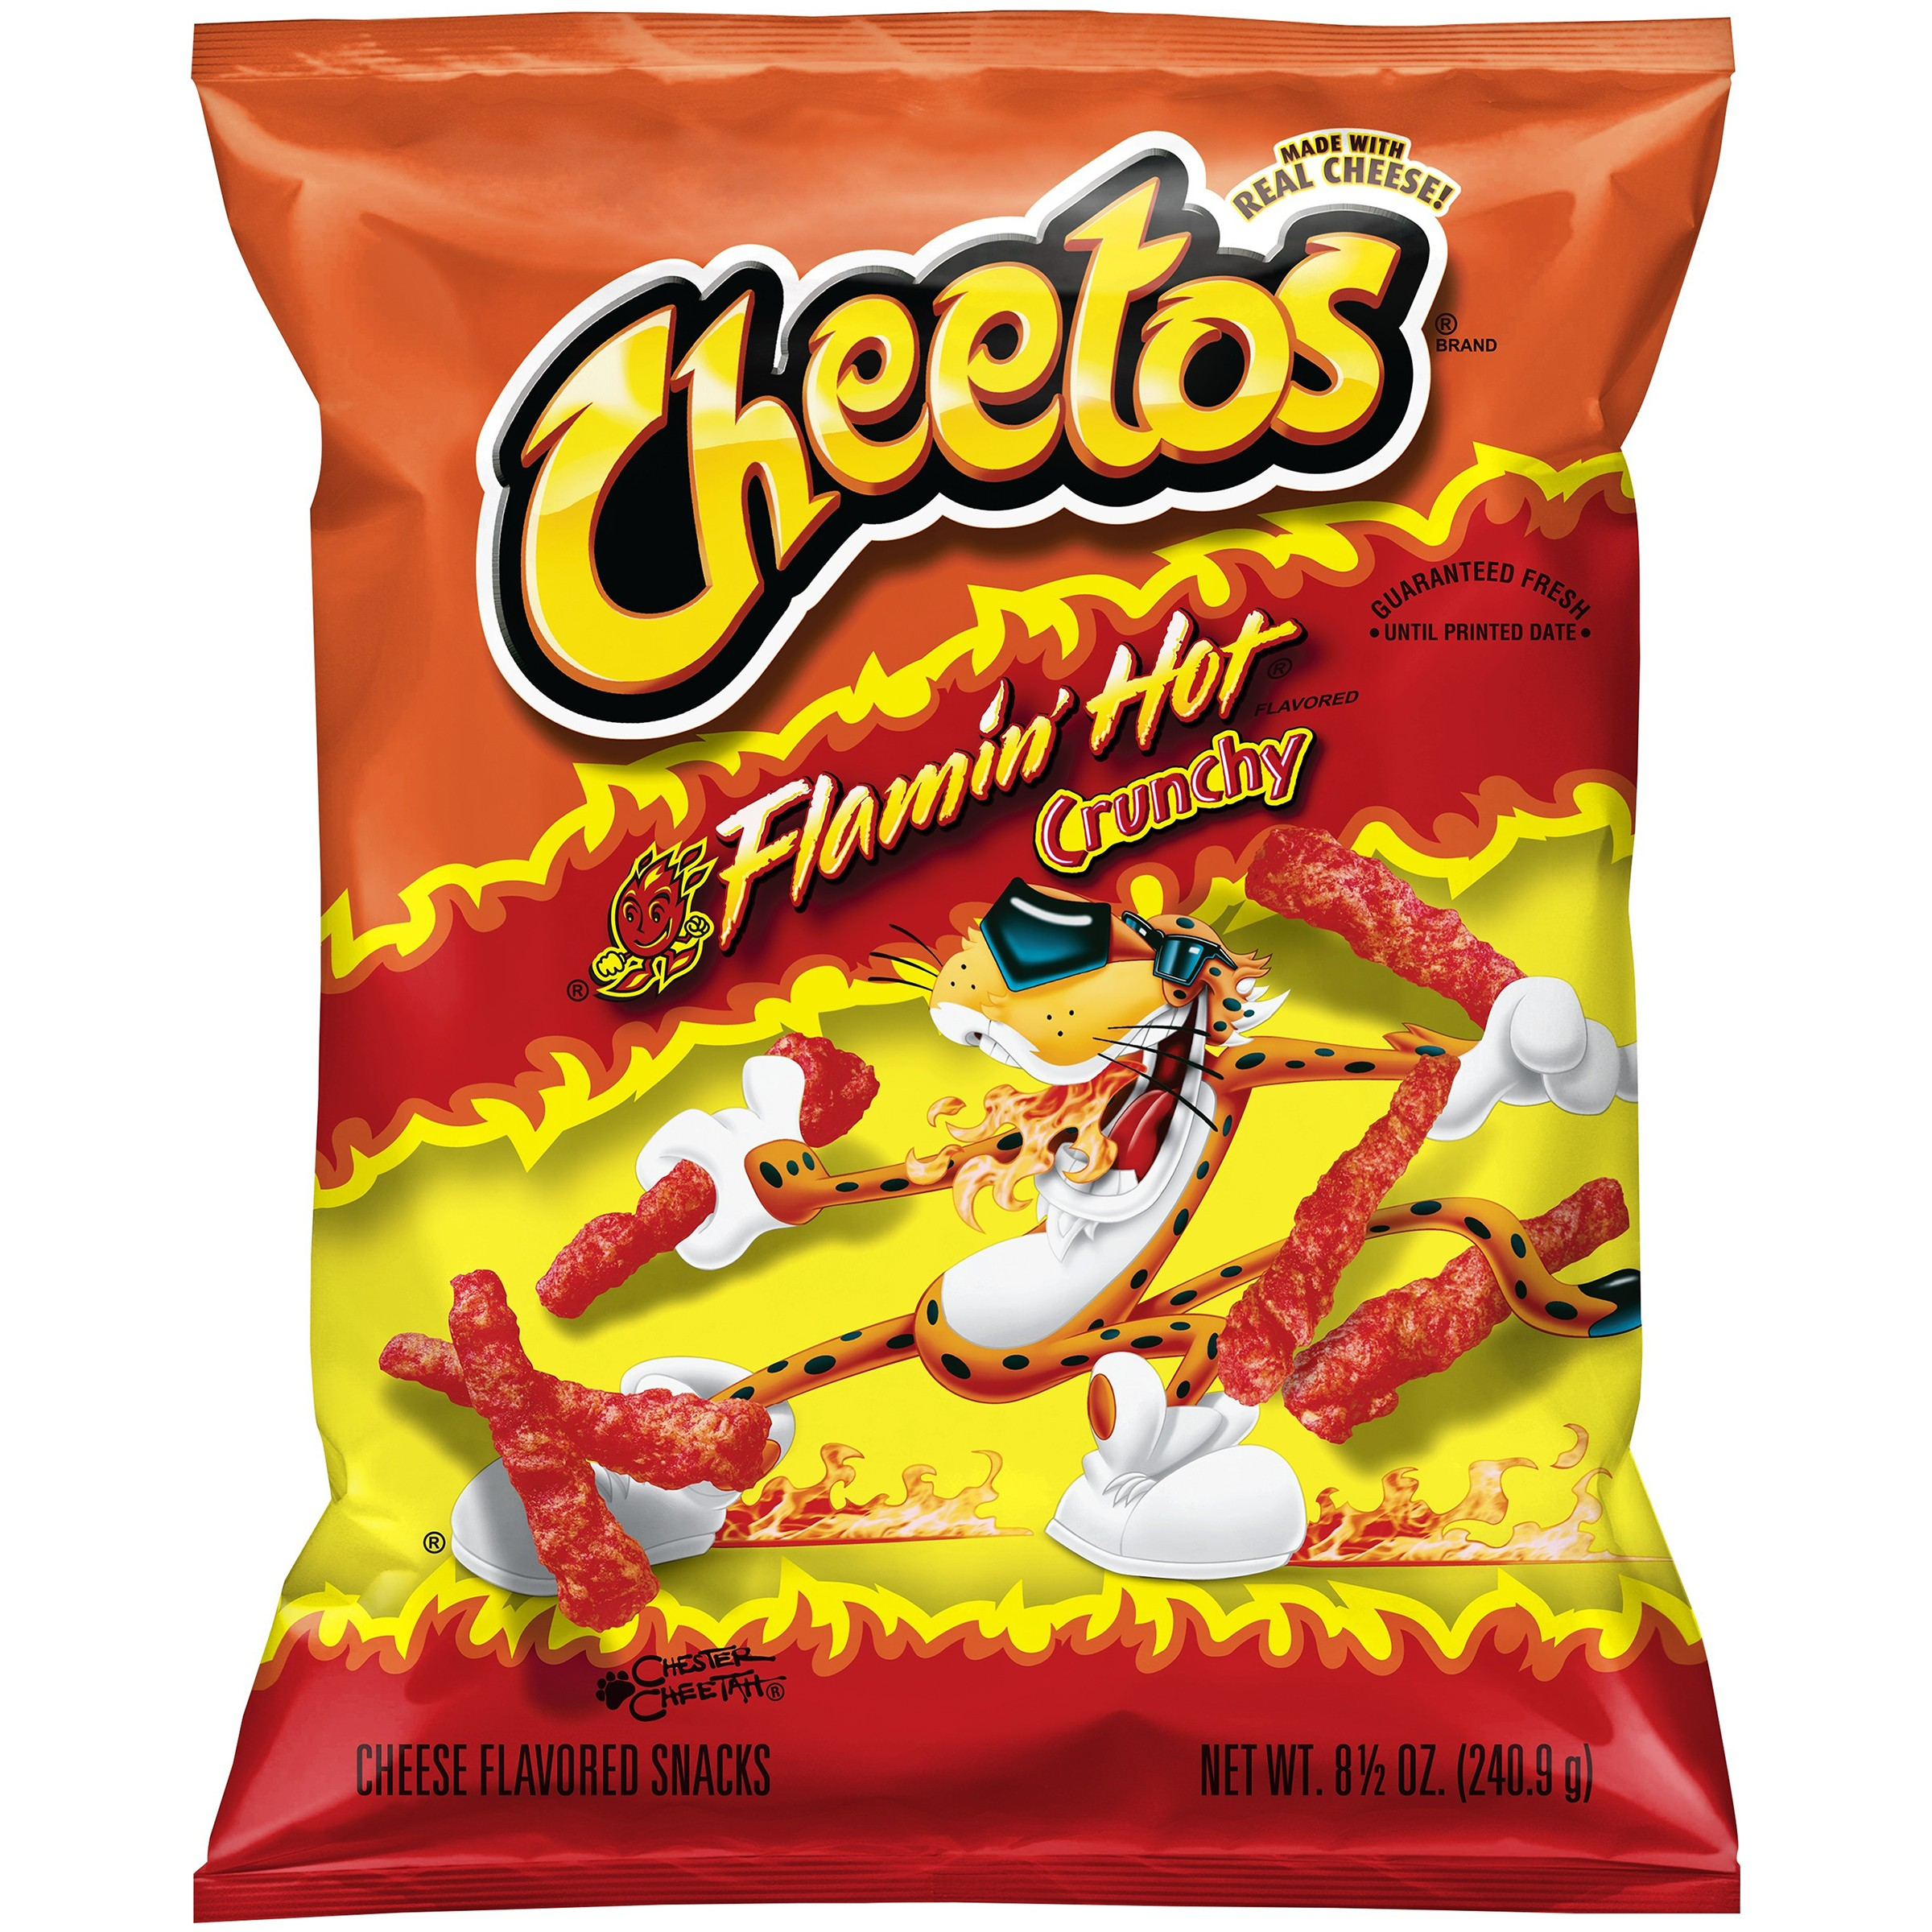 Cheetos Crunchy Cheese Flavored Snacks, Flamin' Hot, 8.5 Oz